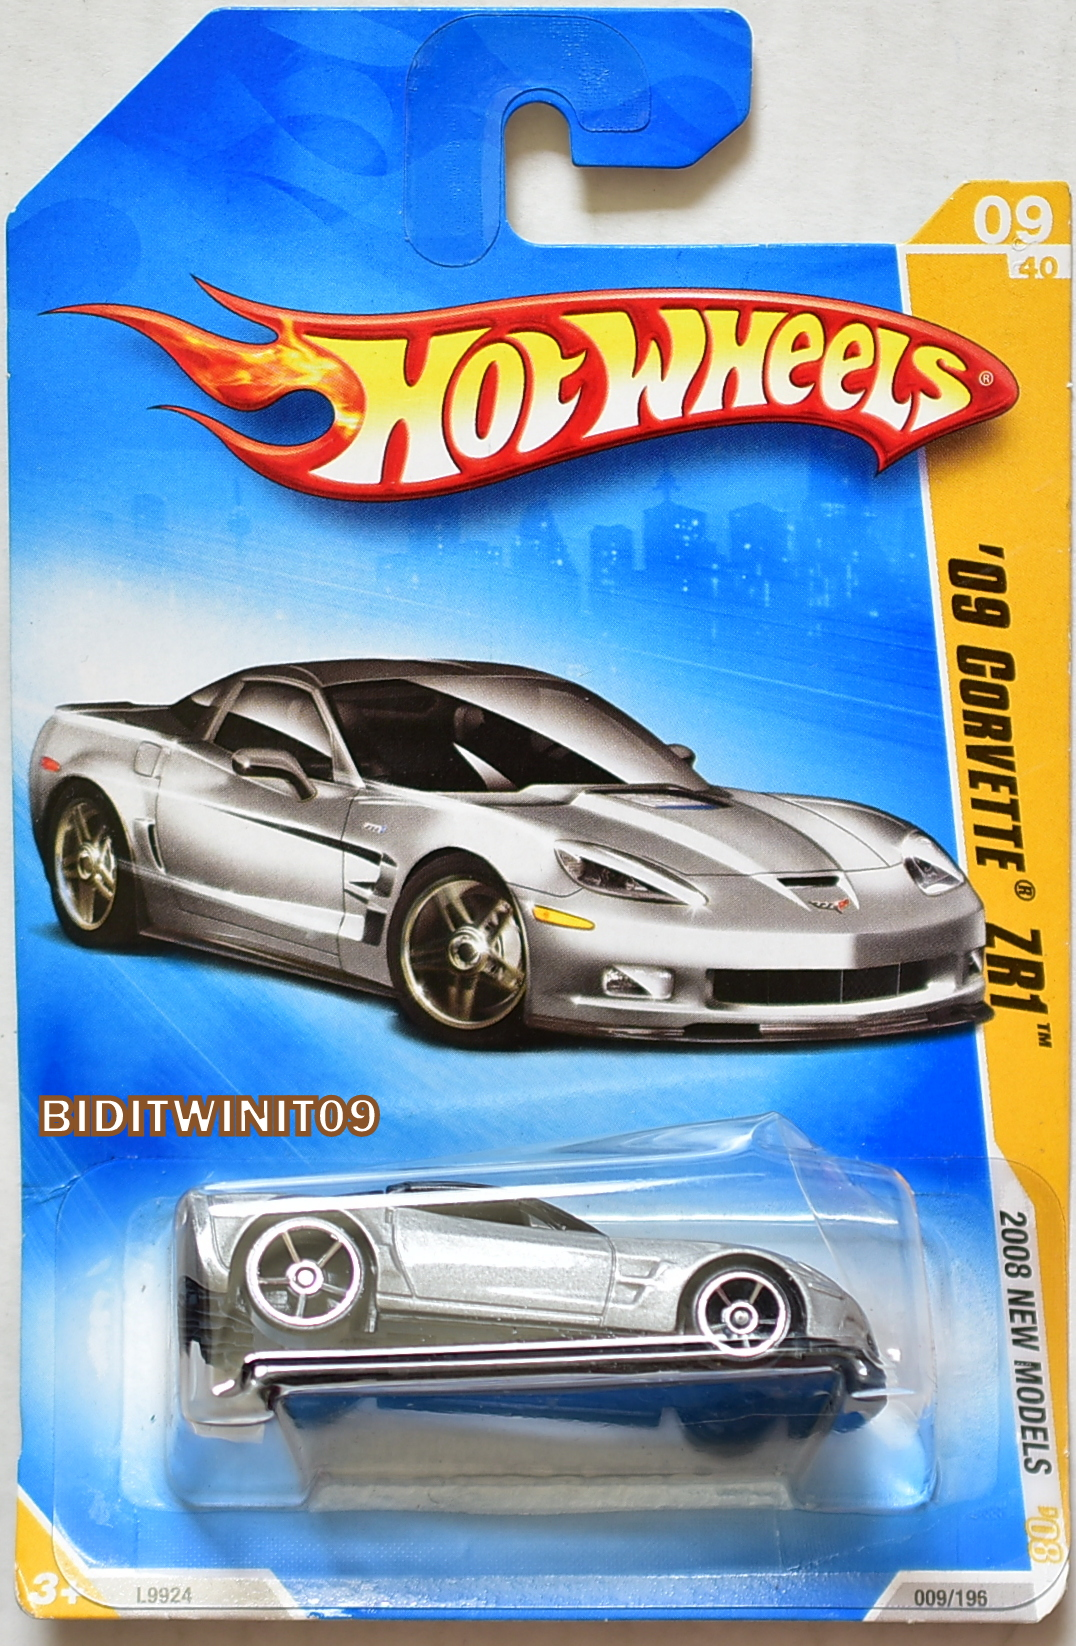 HOT WHEELS 2008 NEW MODELS '09 CORVETTE ZR1 #09/40 SILVER